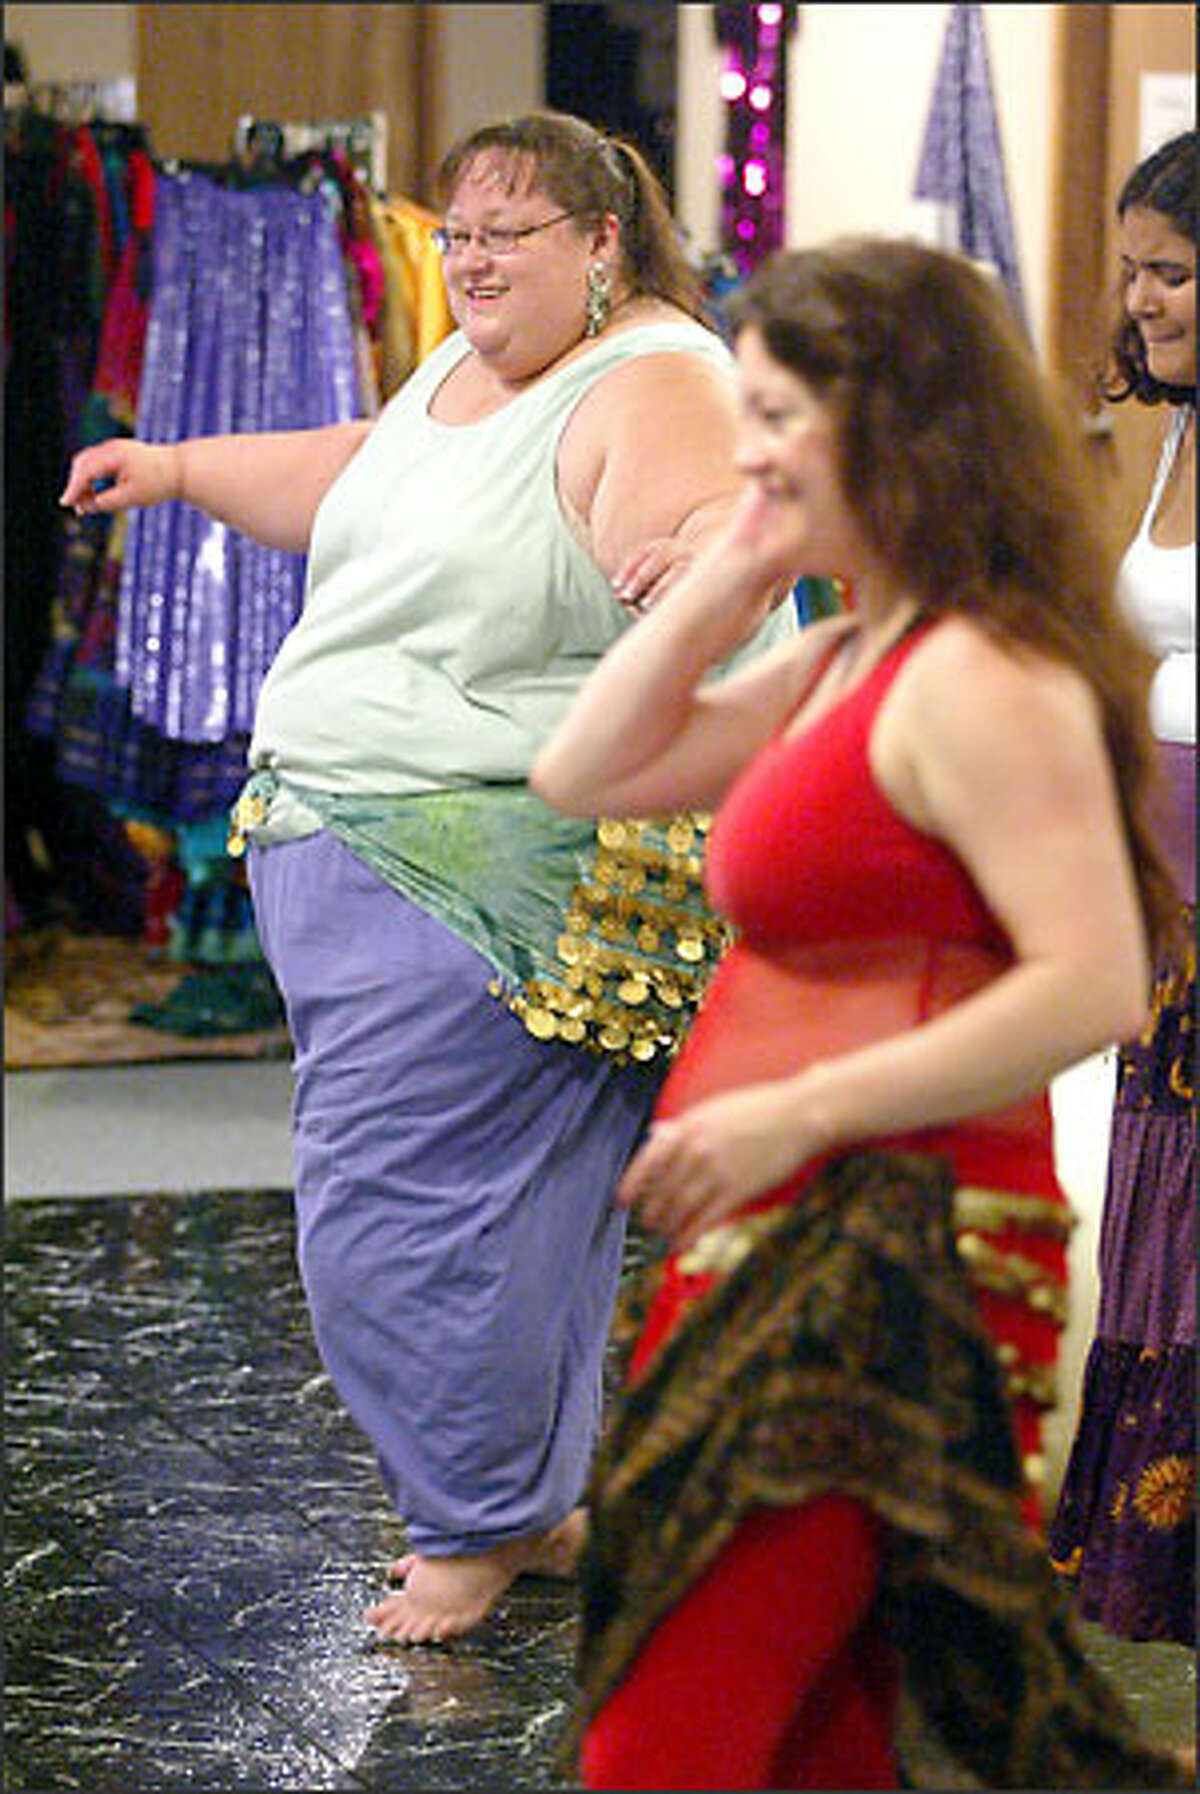 Marty Hale-Evans participates in an intermediate belly-dancing class with instructor Saqra in Kent. Hale-Evans is the founder of SeaFATtle, a group that leads local scale-smashing protests every year in honor of International No-Diet Day.